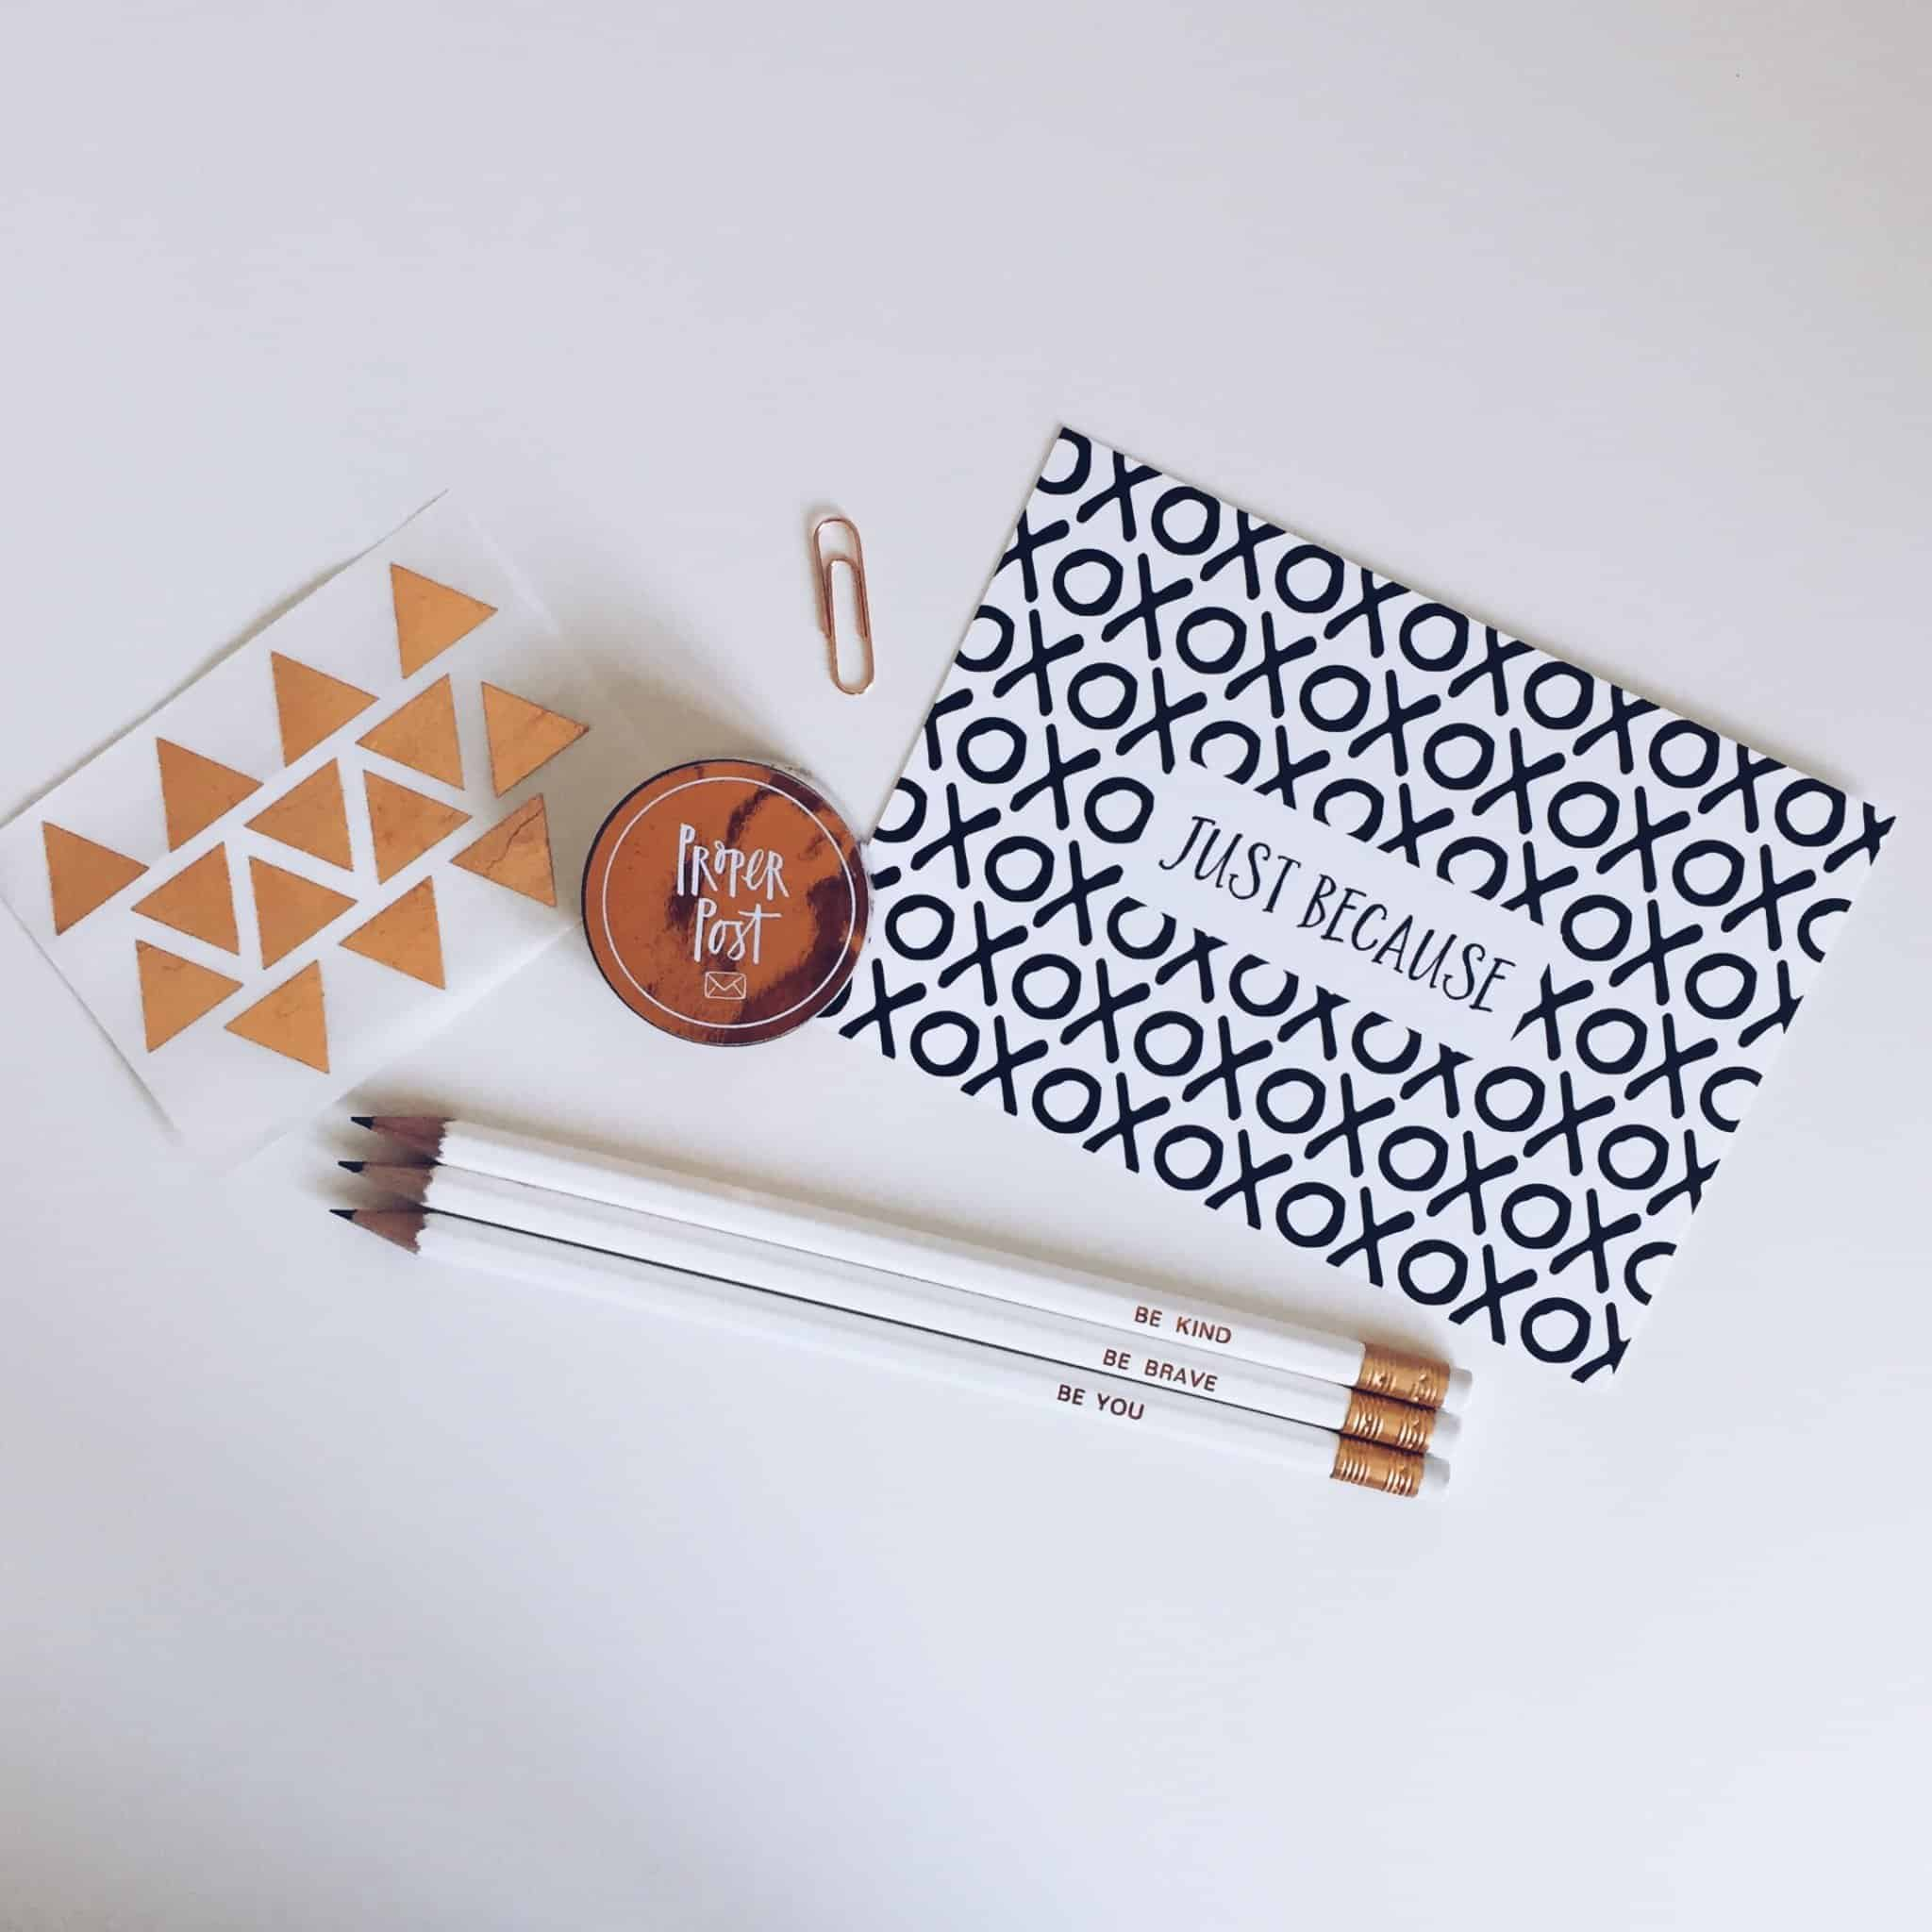 Copper and Monochrome Stationery goodies from Proper Post